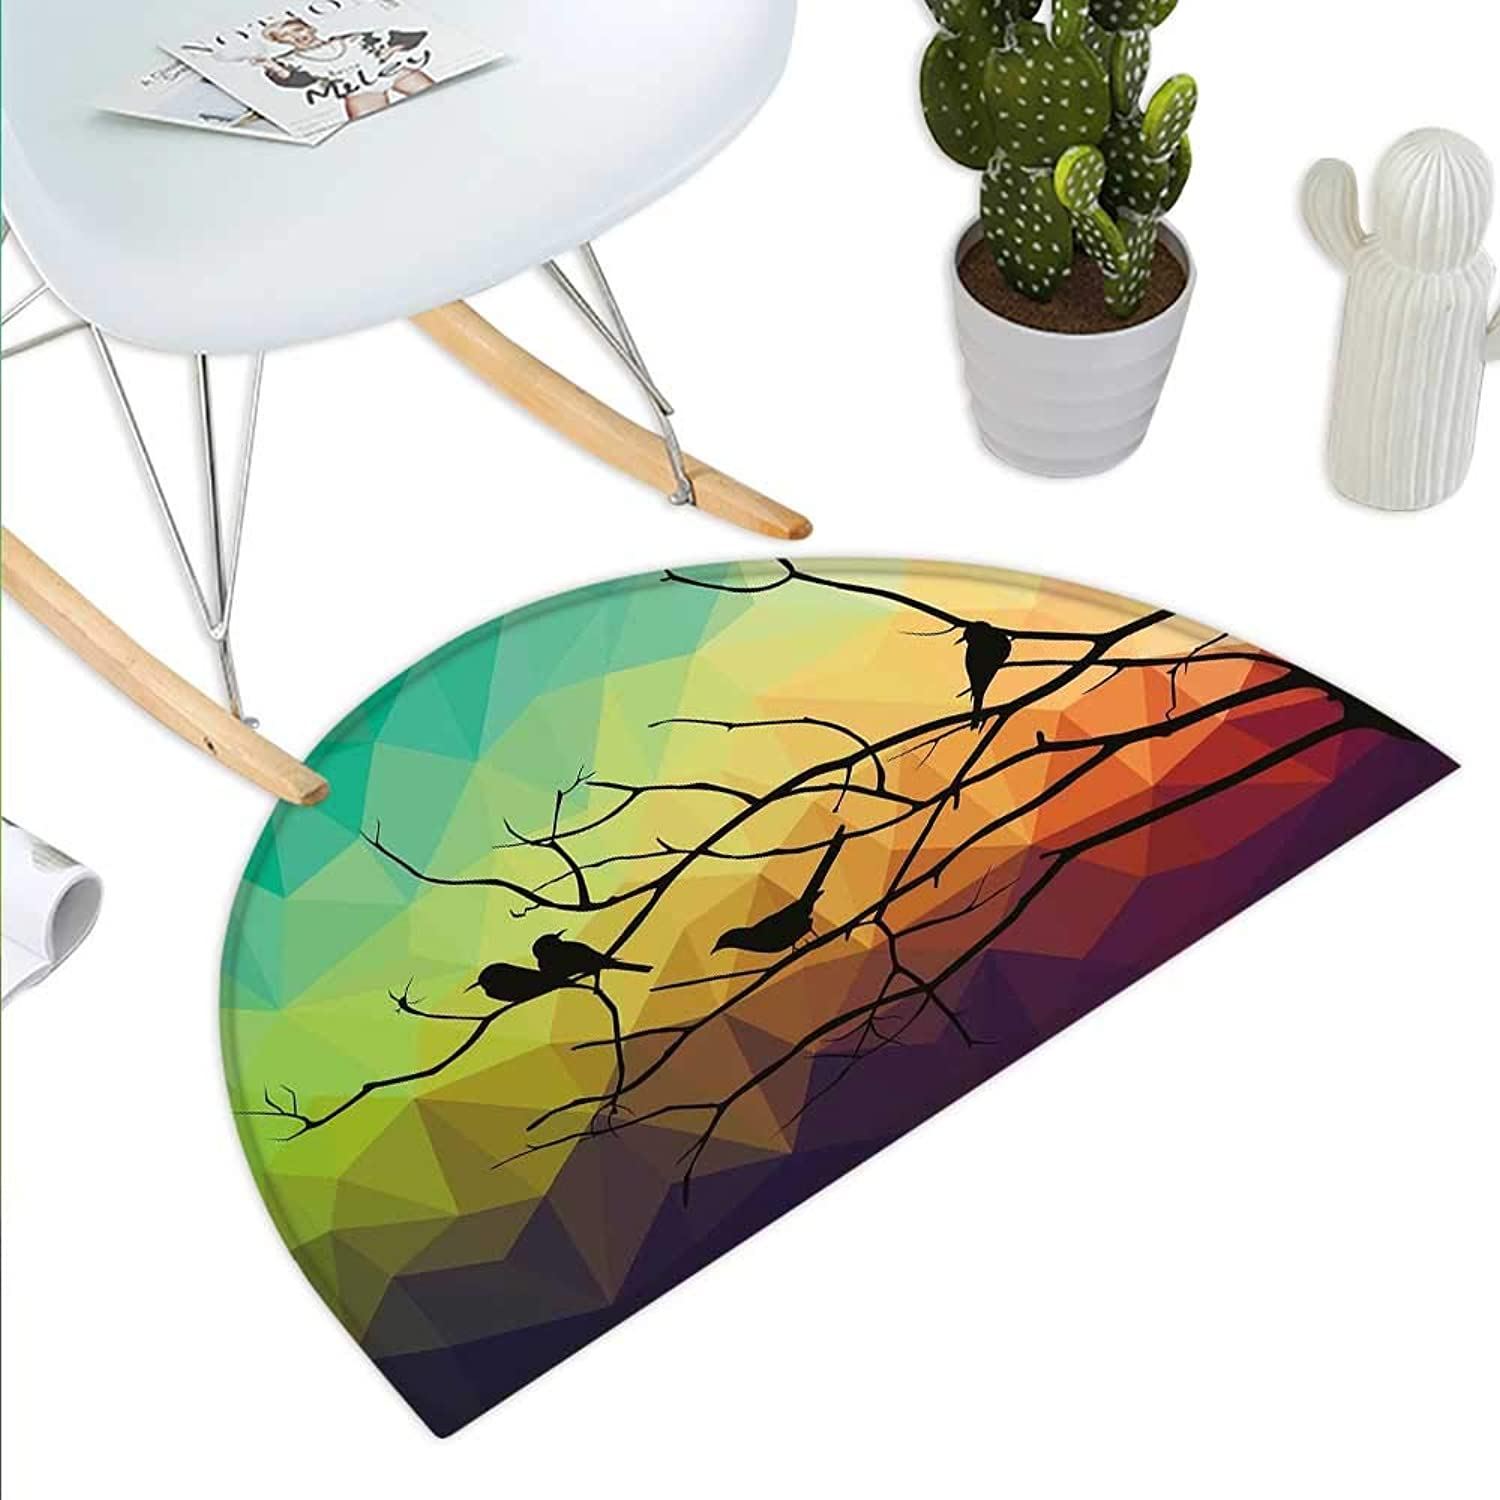 Modern Semicircle Doormat Birds on Branch with Geometrical Abstract Rainbow colord Sharp Lined Backdrop Print Halfmoon doormats H 35.4  xD 53.1  Multicolor